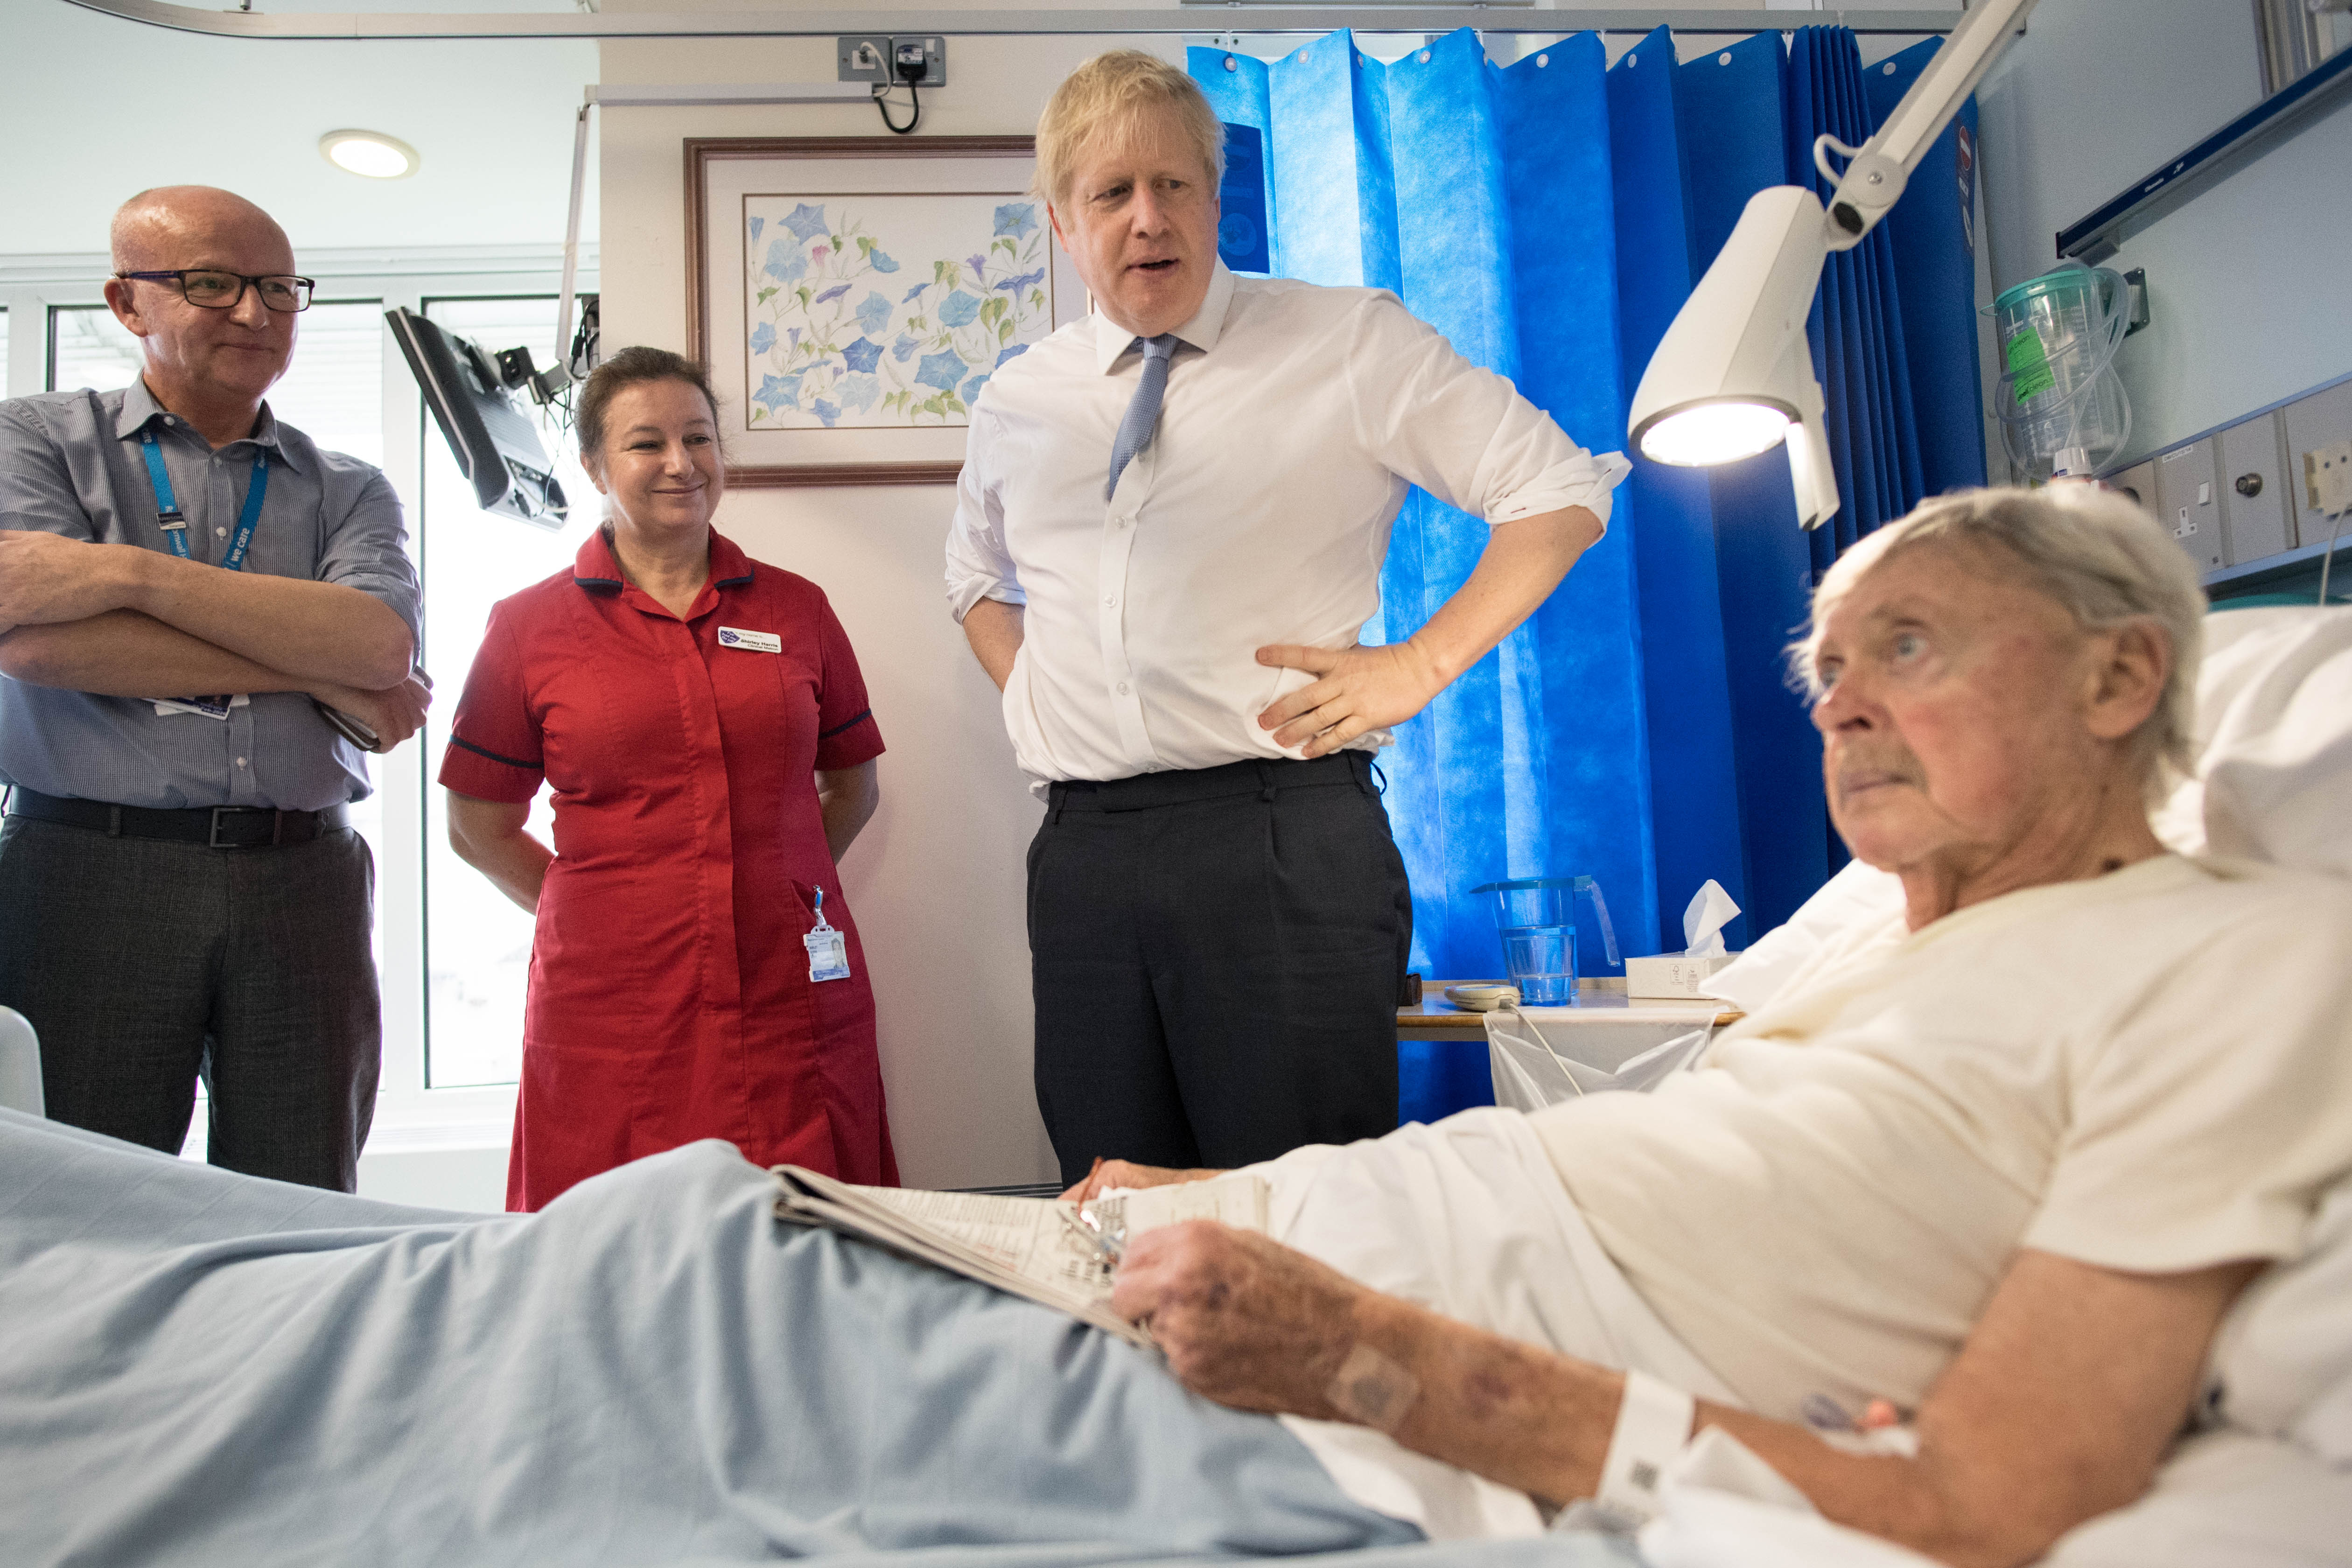 Prime Minister Boris Johnson meets staff and patients during a visit to West Cornwall Community Hospital, in Penzance, Cornwall, whilst on the General Election campaign trail.